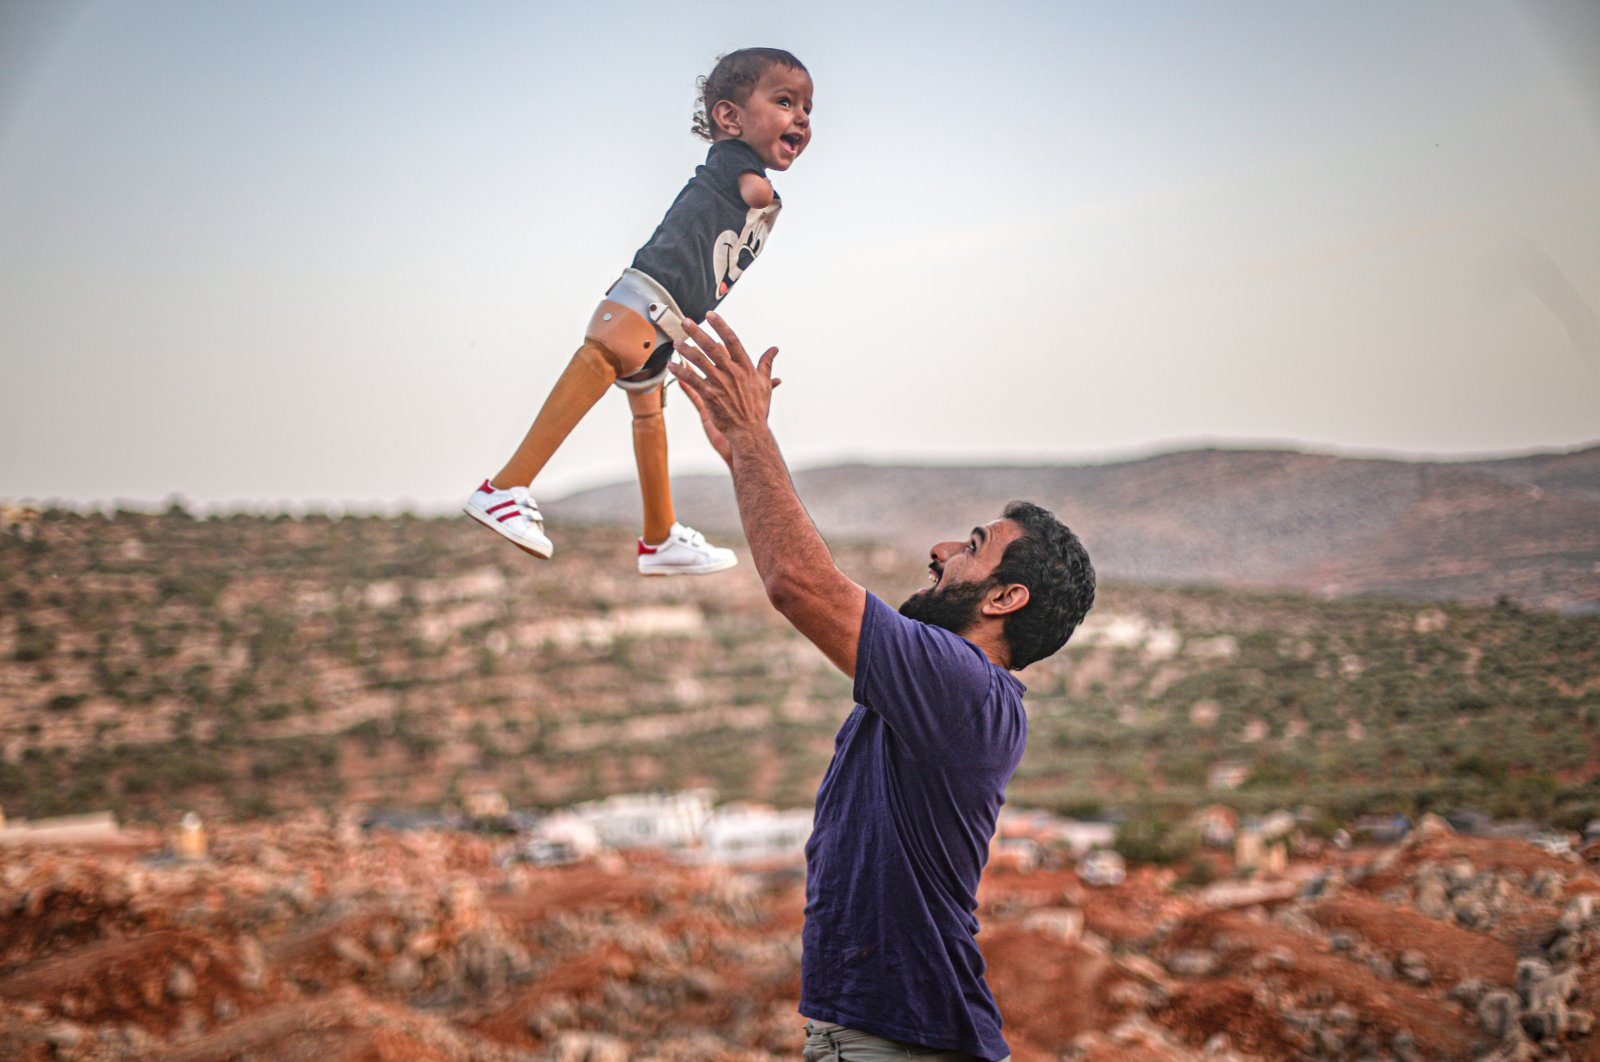 Father Khaled bounces his son Muhammad, in Idlib, Syria, Oct. 22, 2020. (AA Photo)